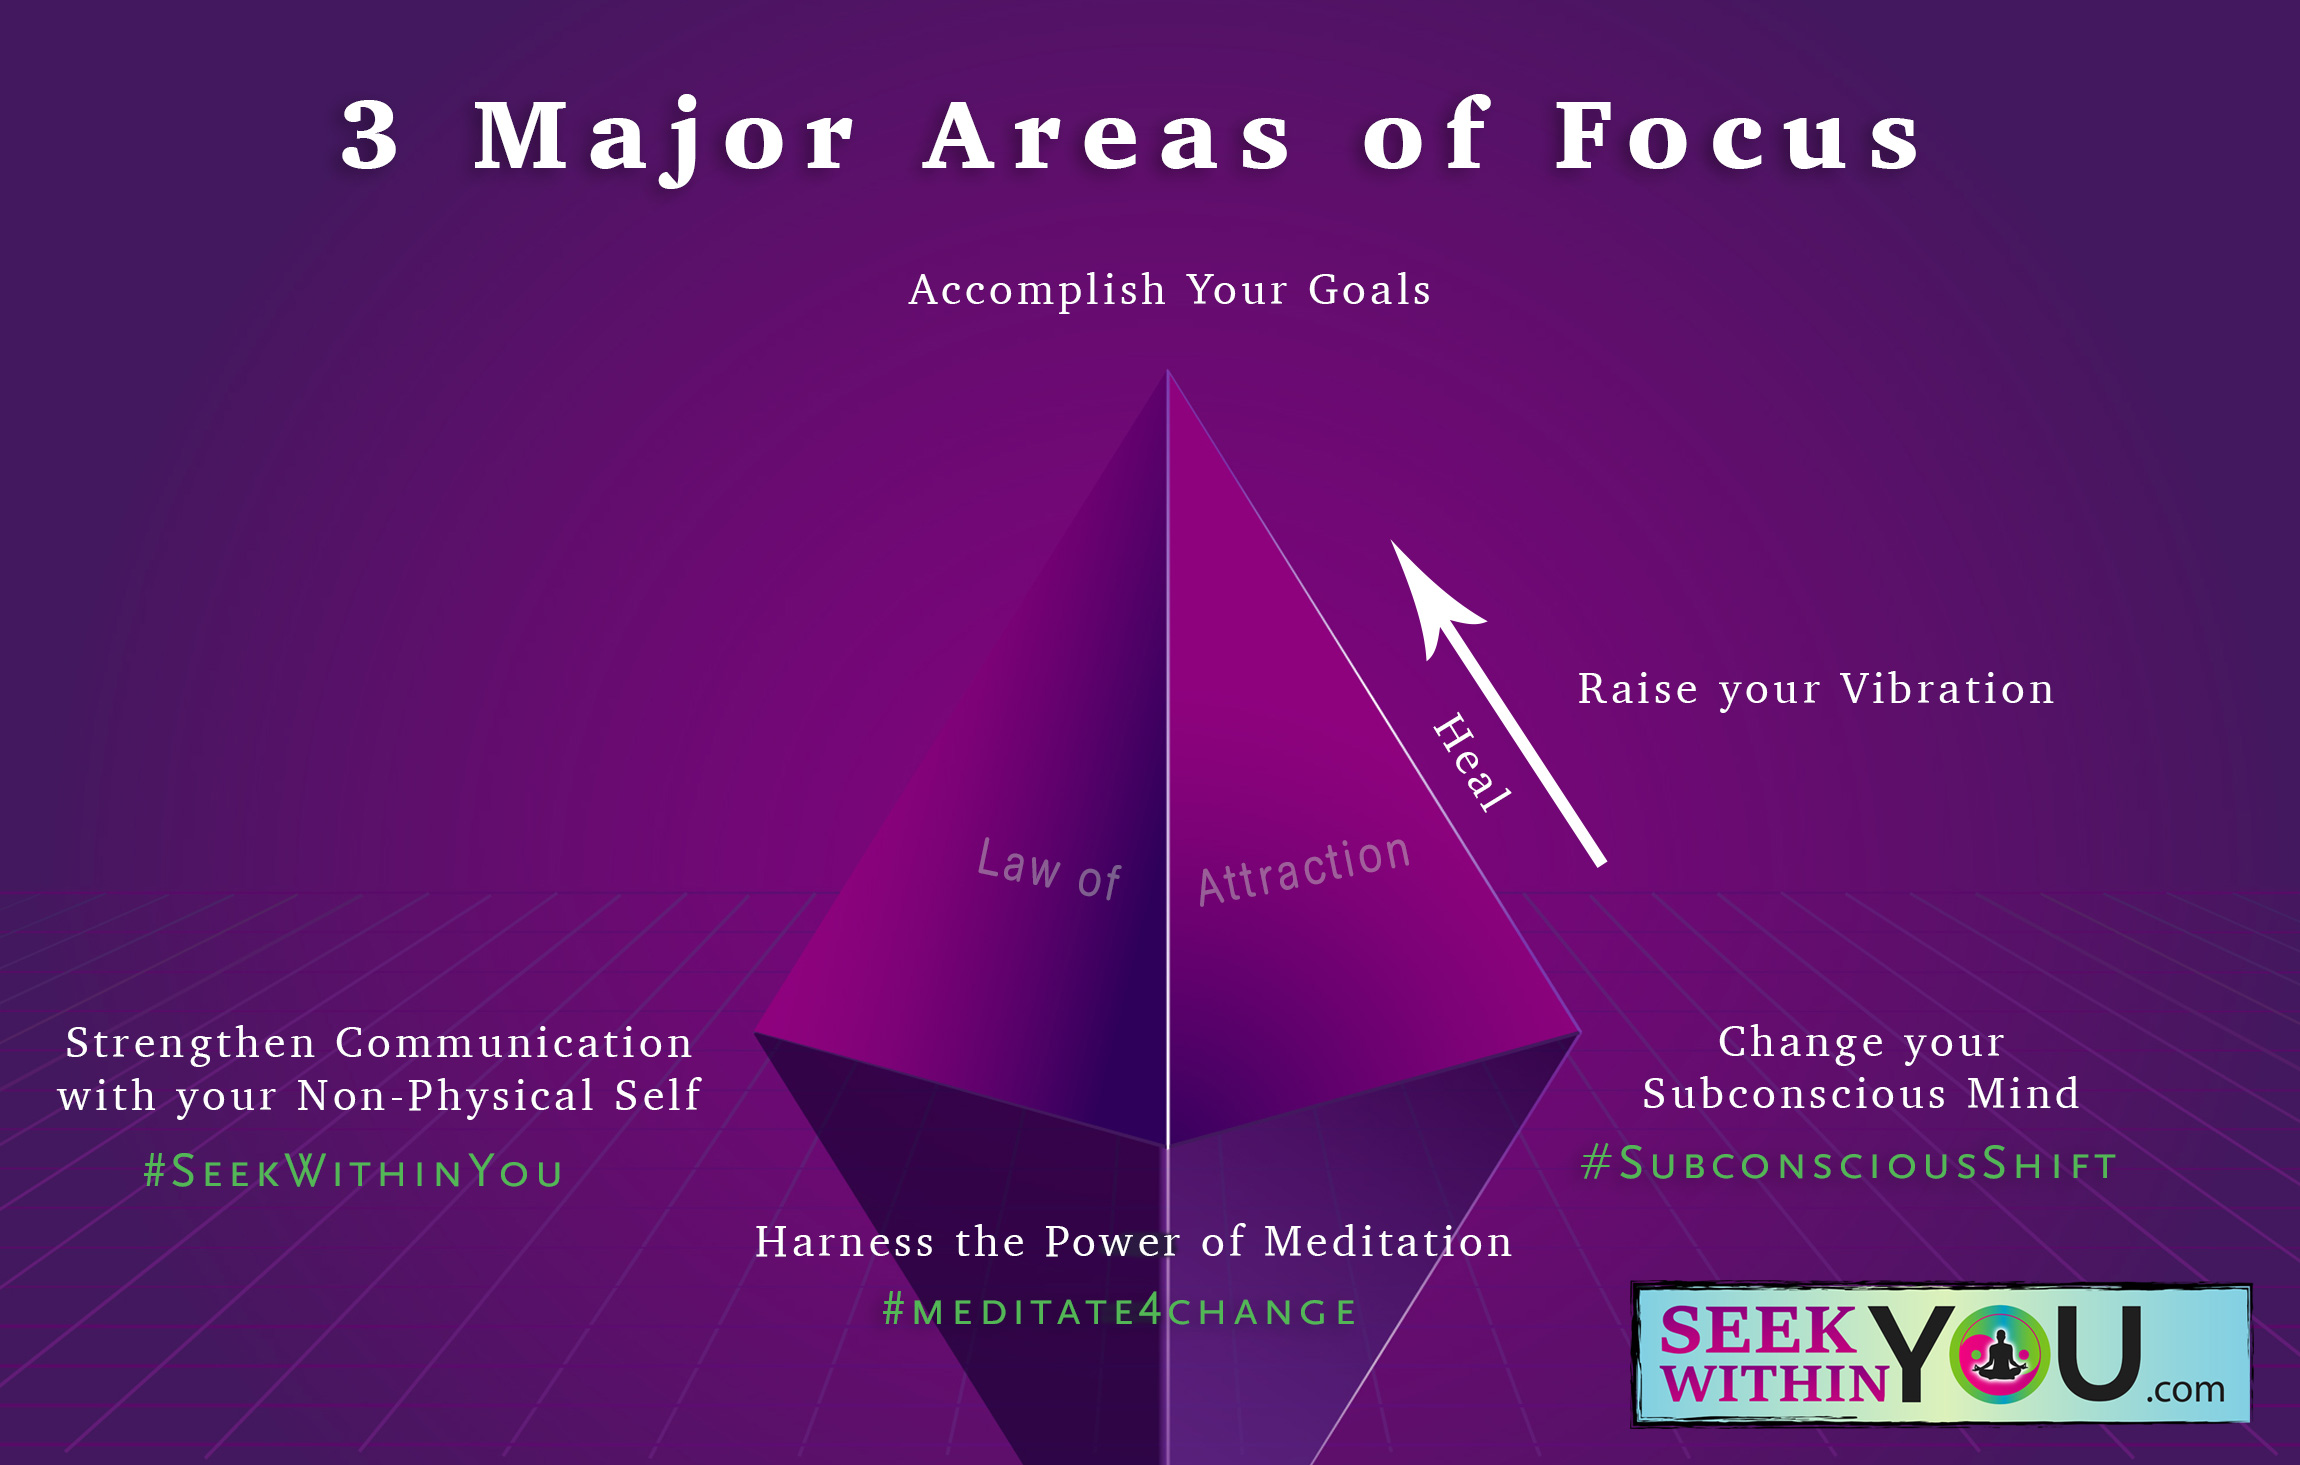 Seek Within You Mission